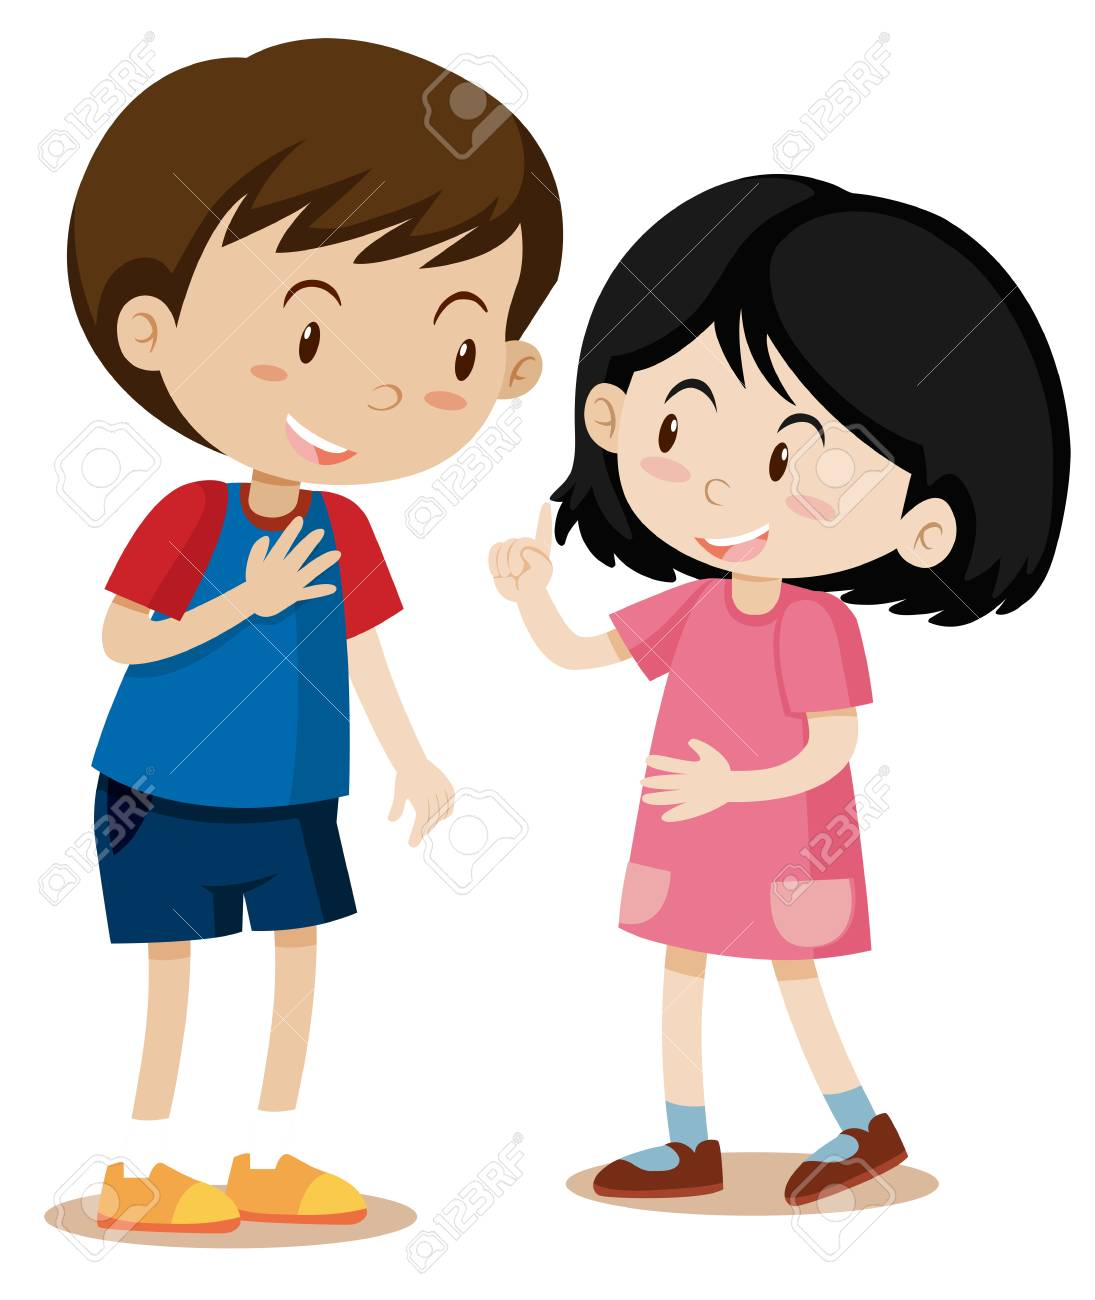 Young Boy and Girl Talking illustration.